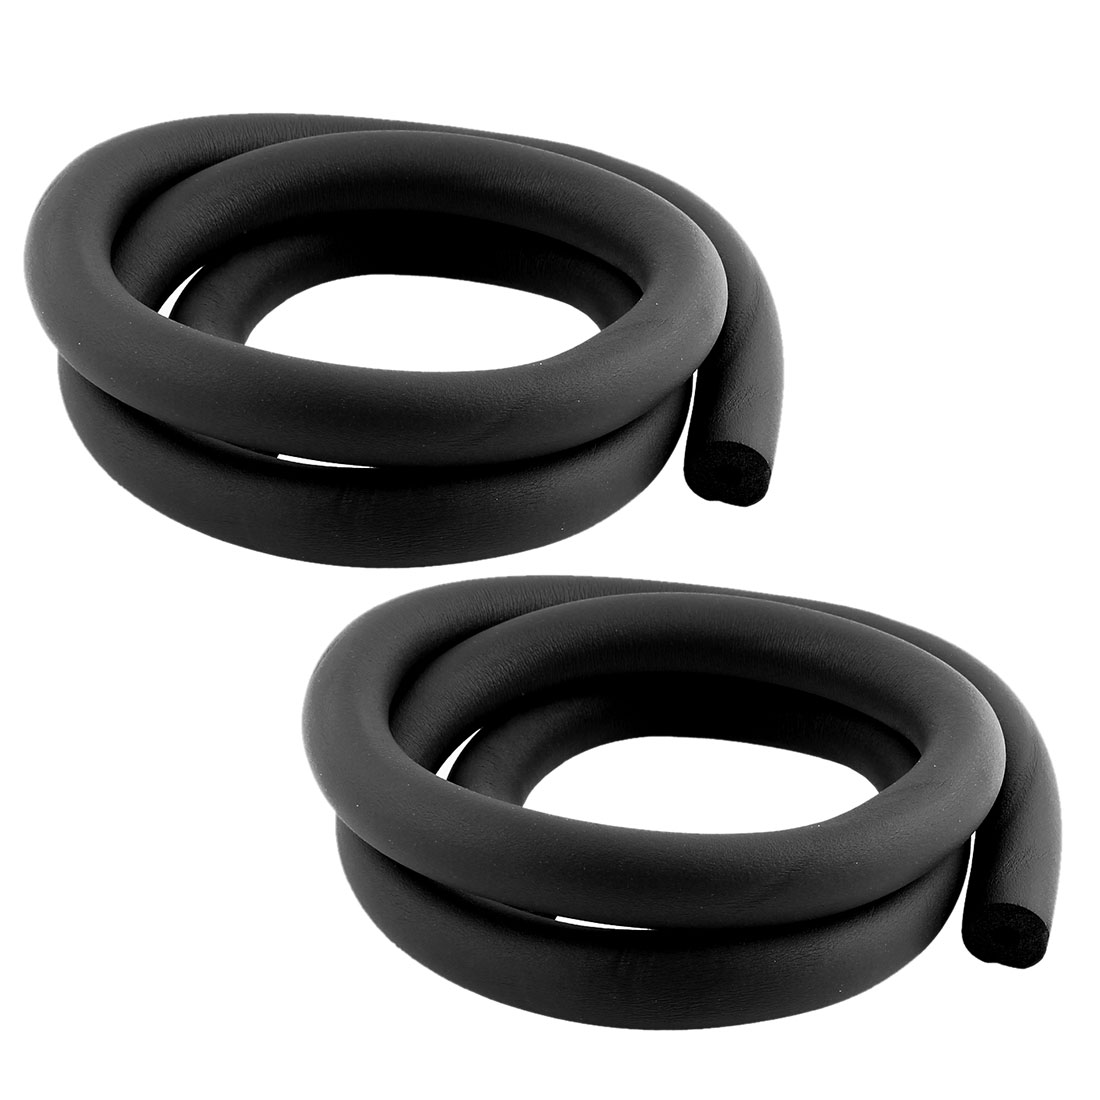 6mm x 15mm x 1.9m Heat Isolating Foam Hose Pipe for Air Conditioner 2Pcs